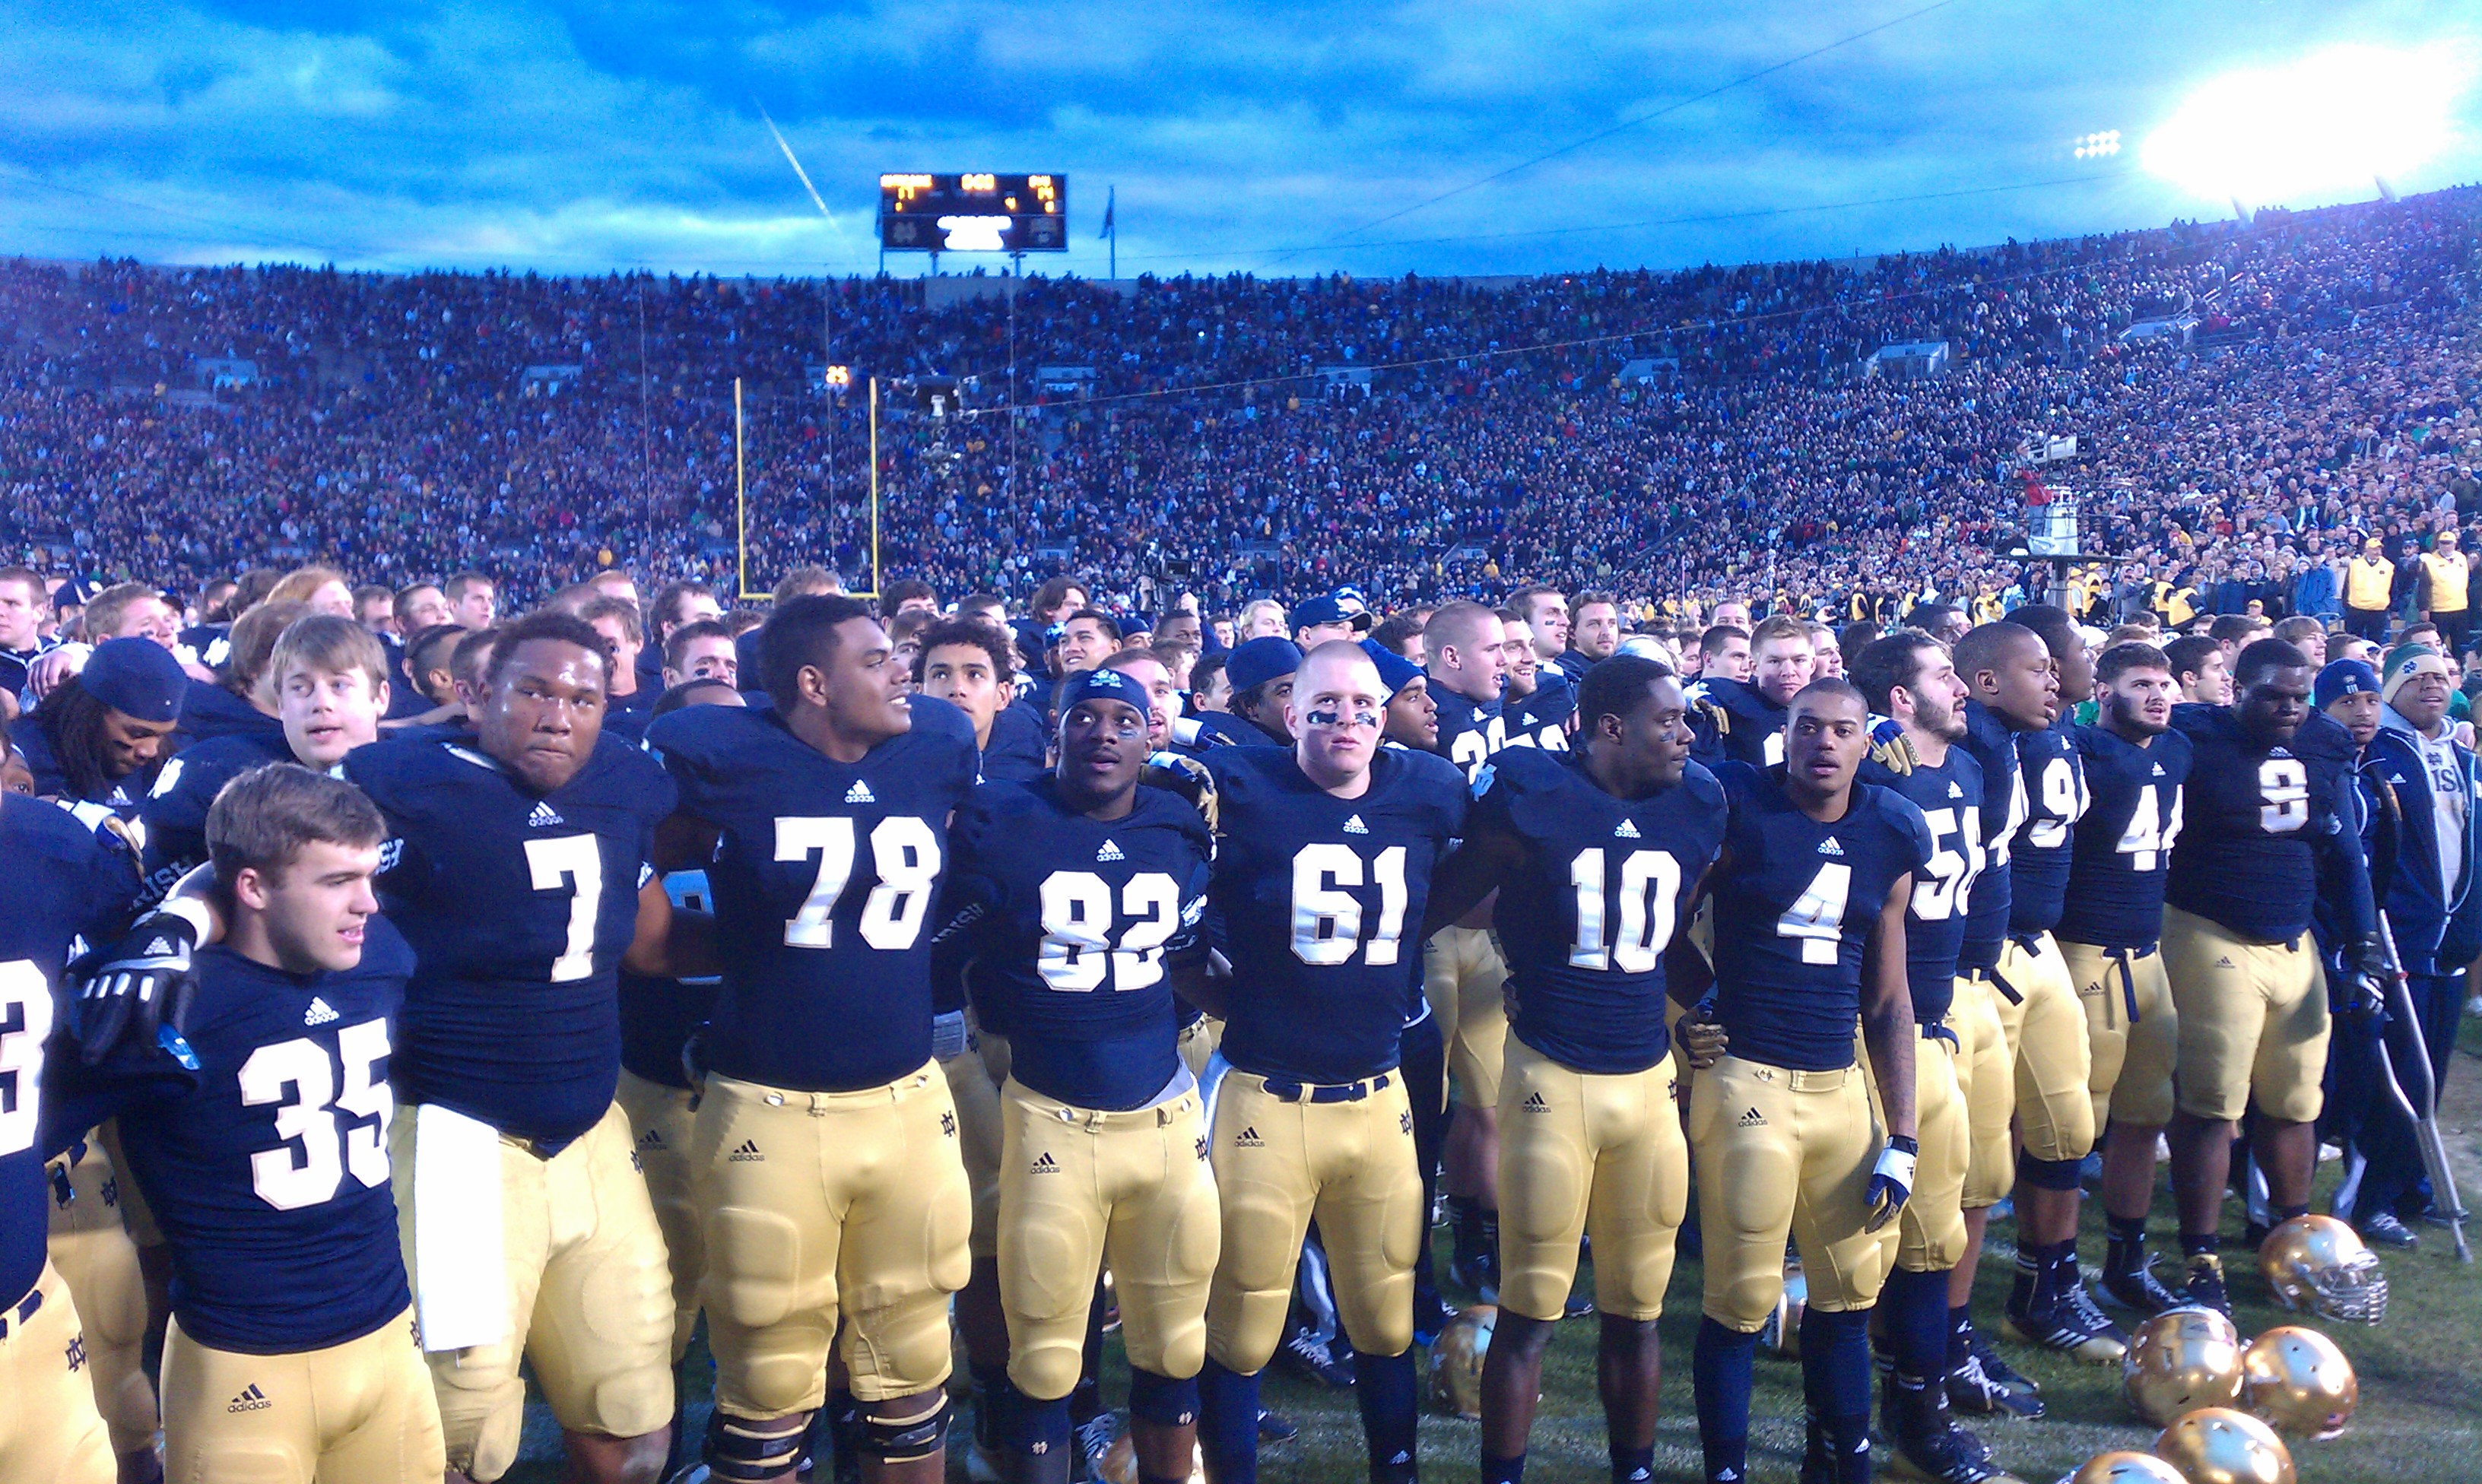 Notre dame football pictures gallery